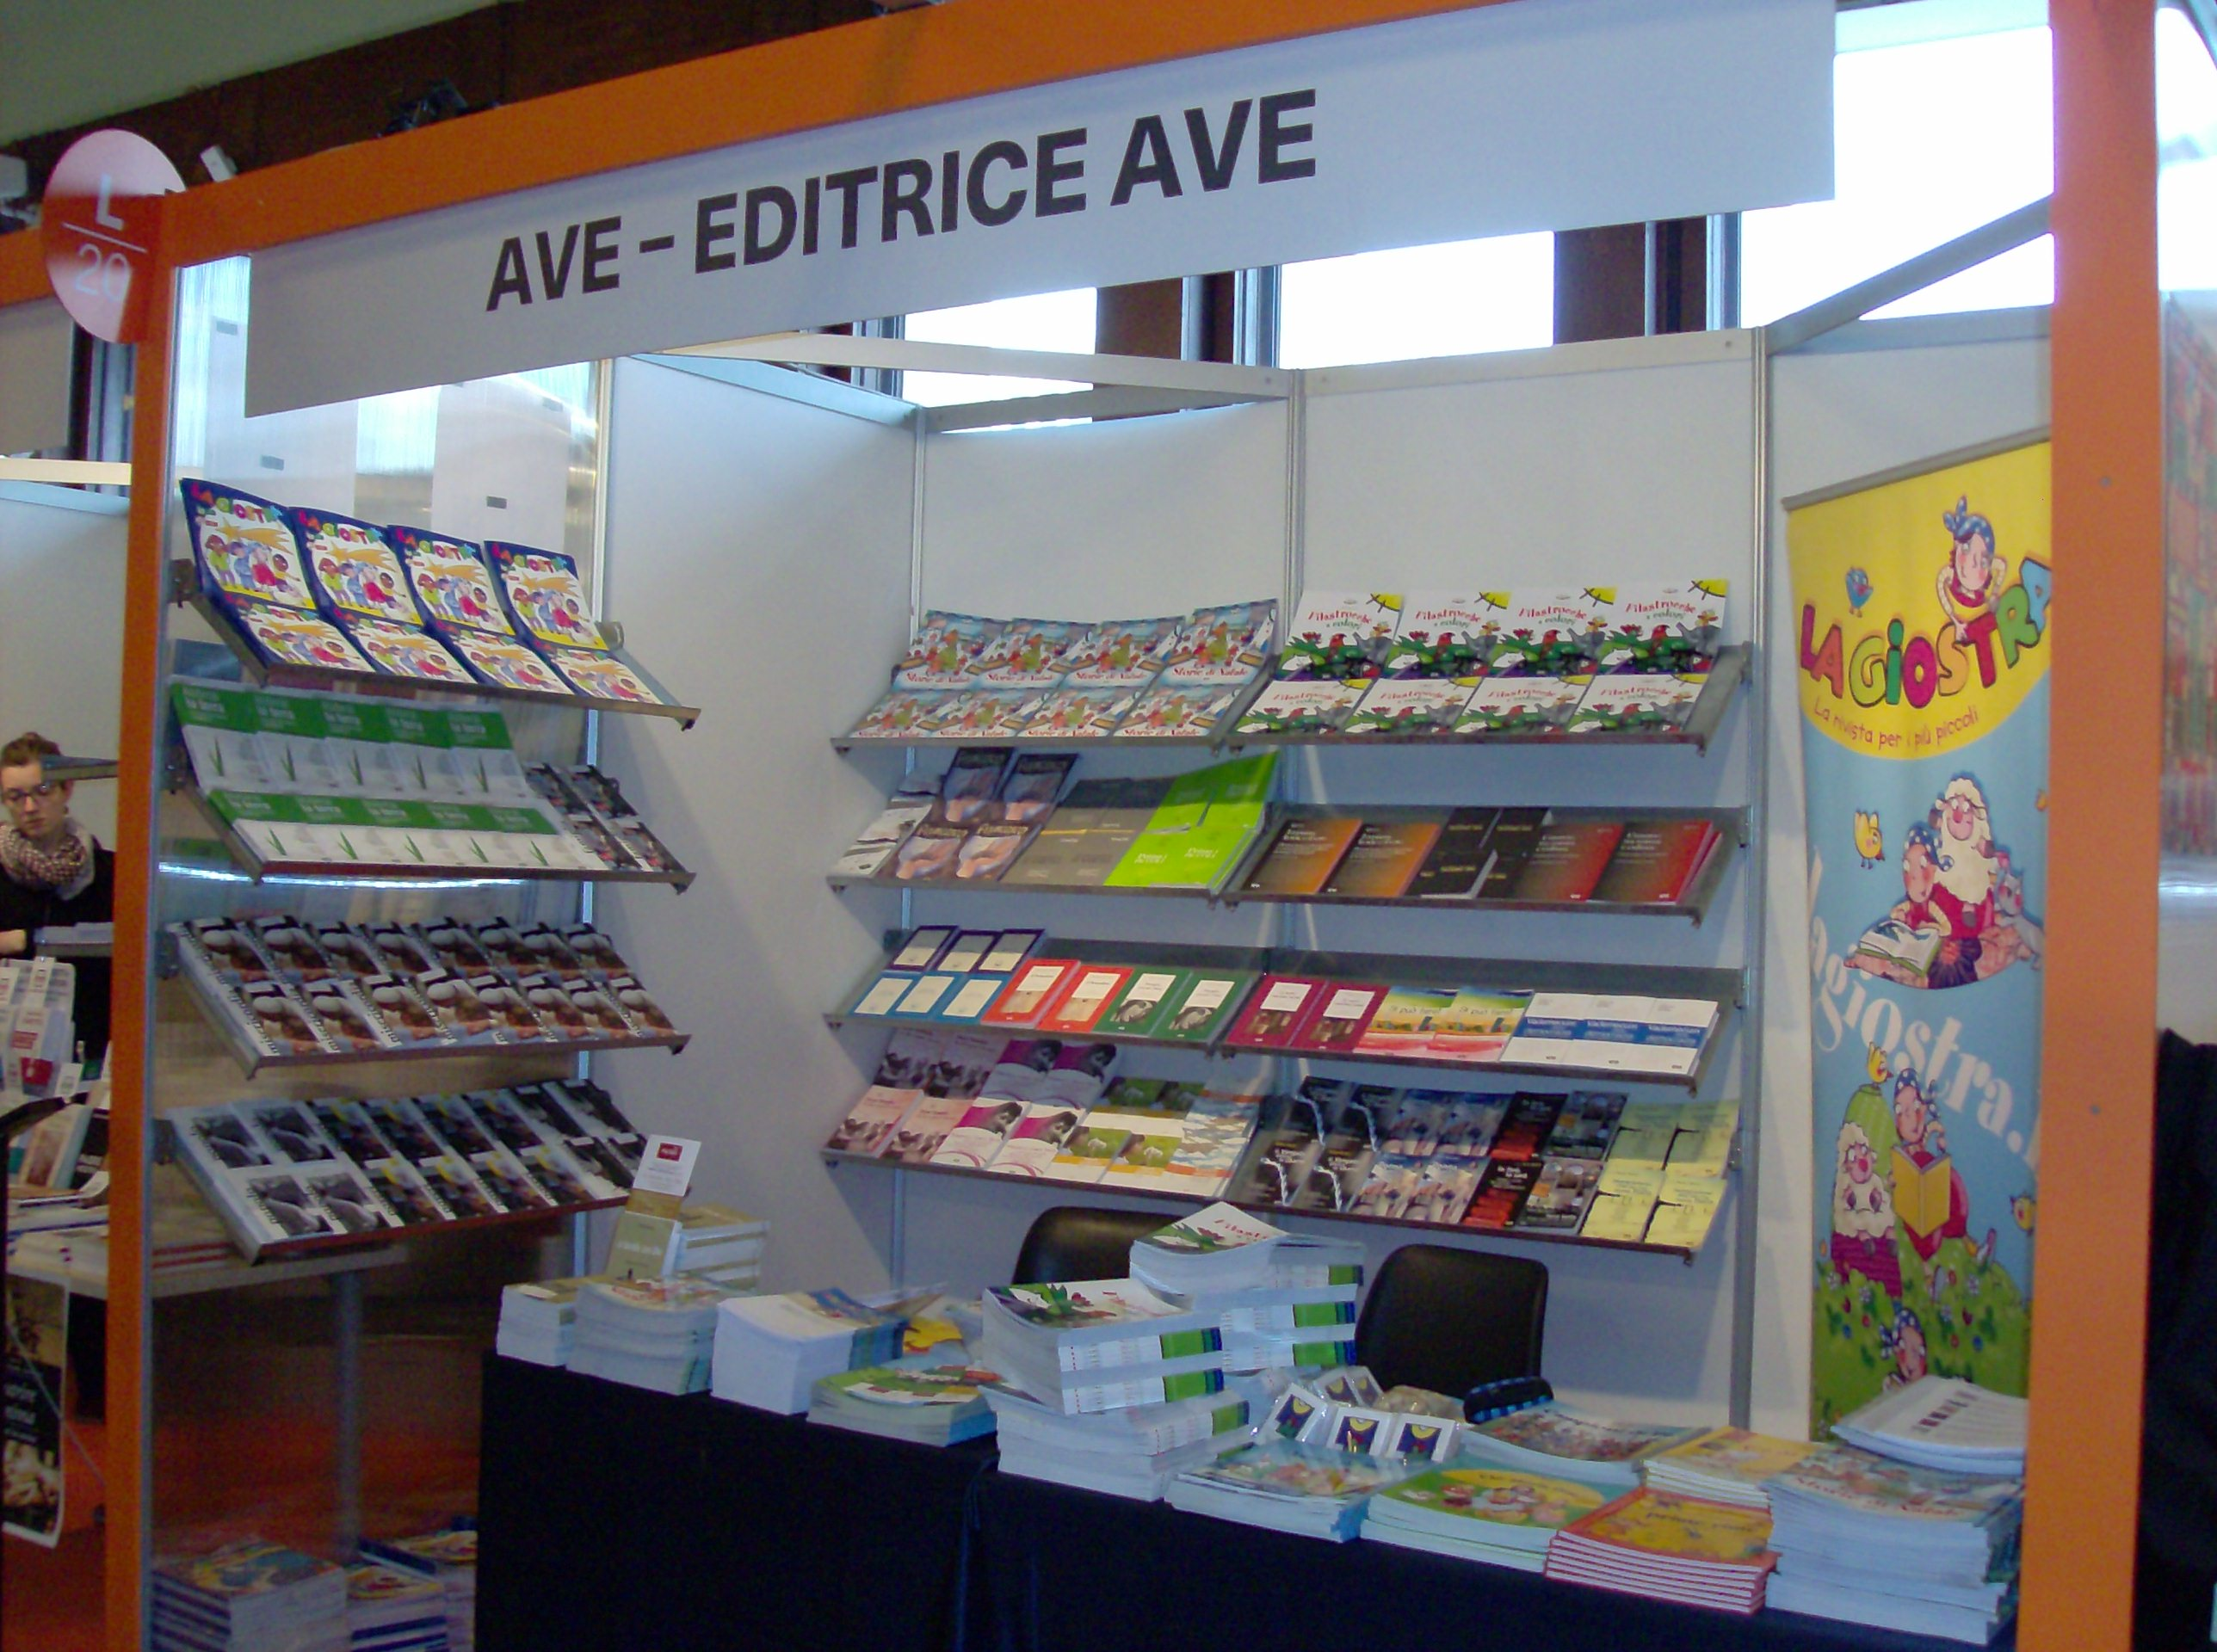 lo stand dell'editrice Ave in fiera